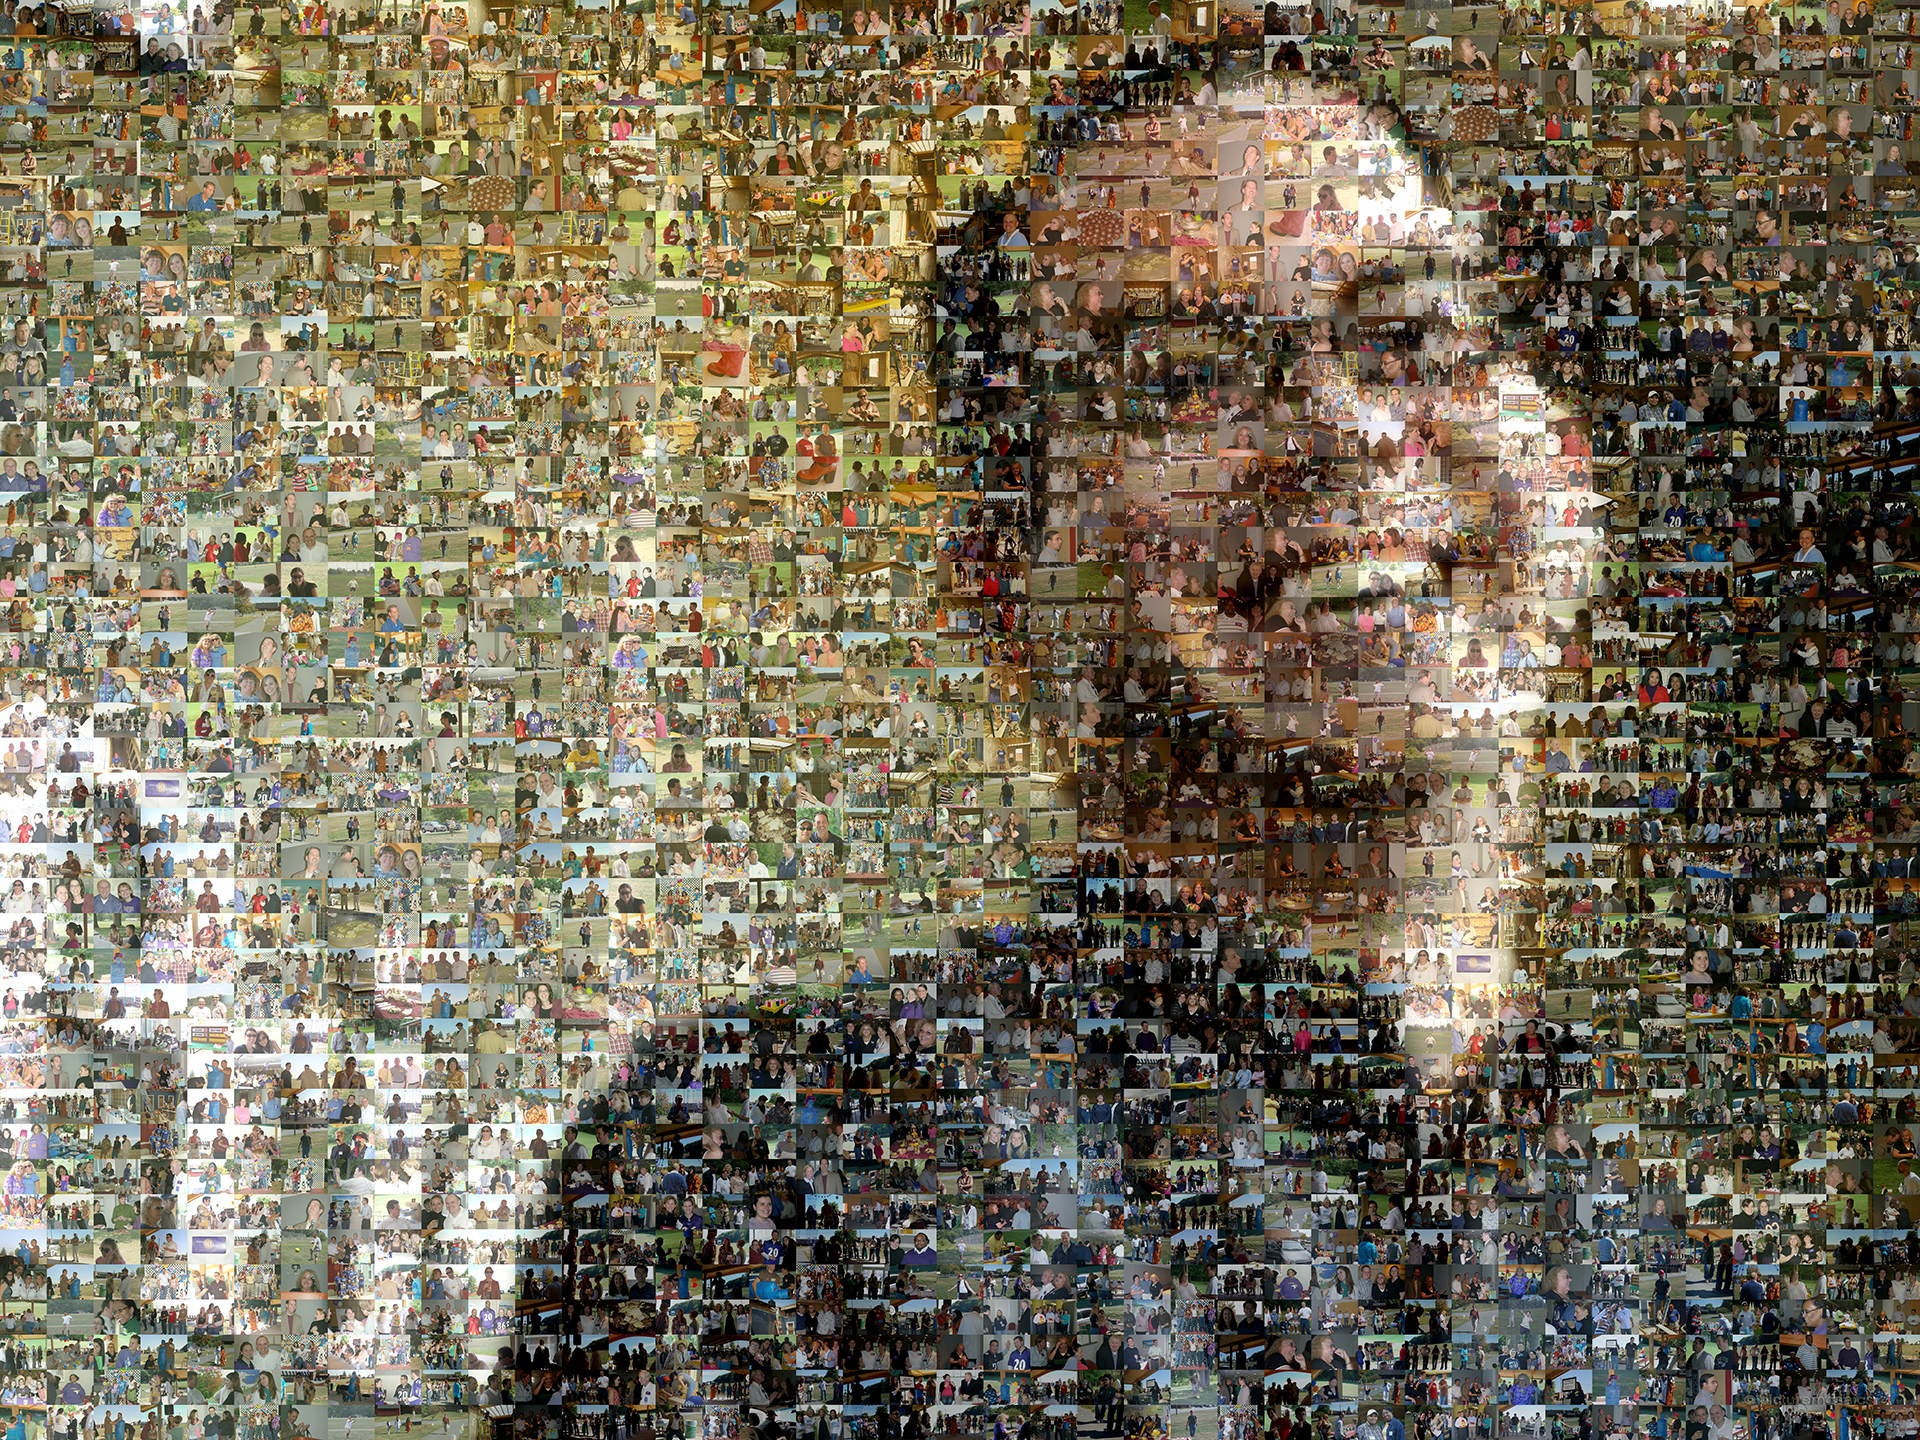 photo mosaic created using 851 corporate photos